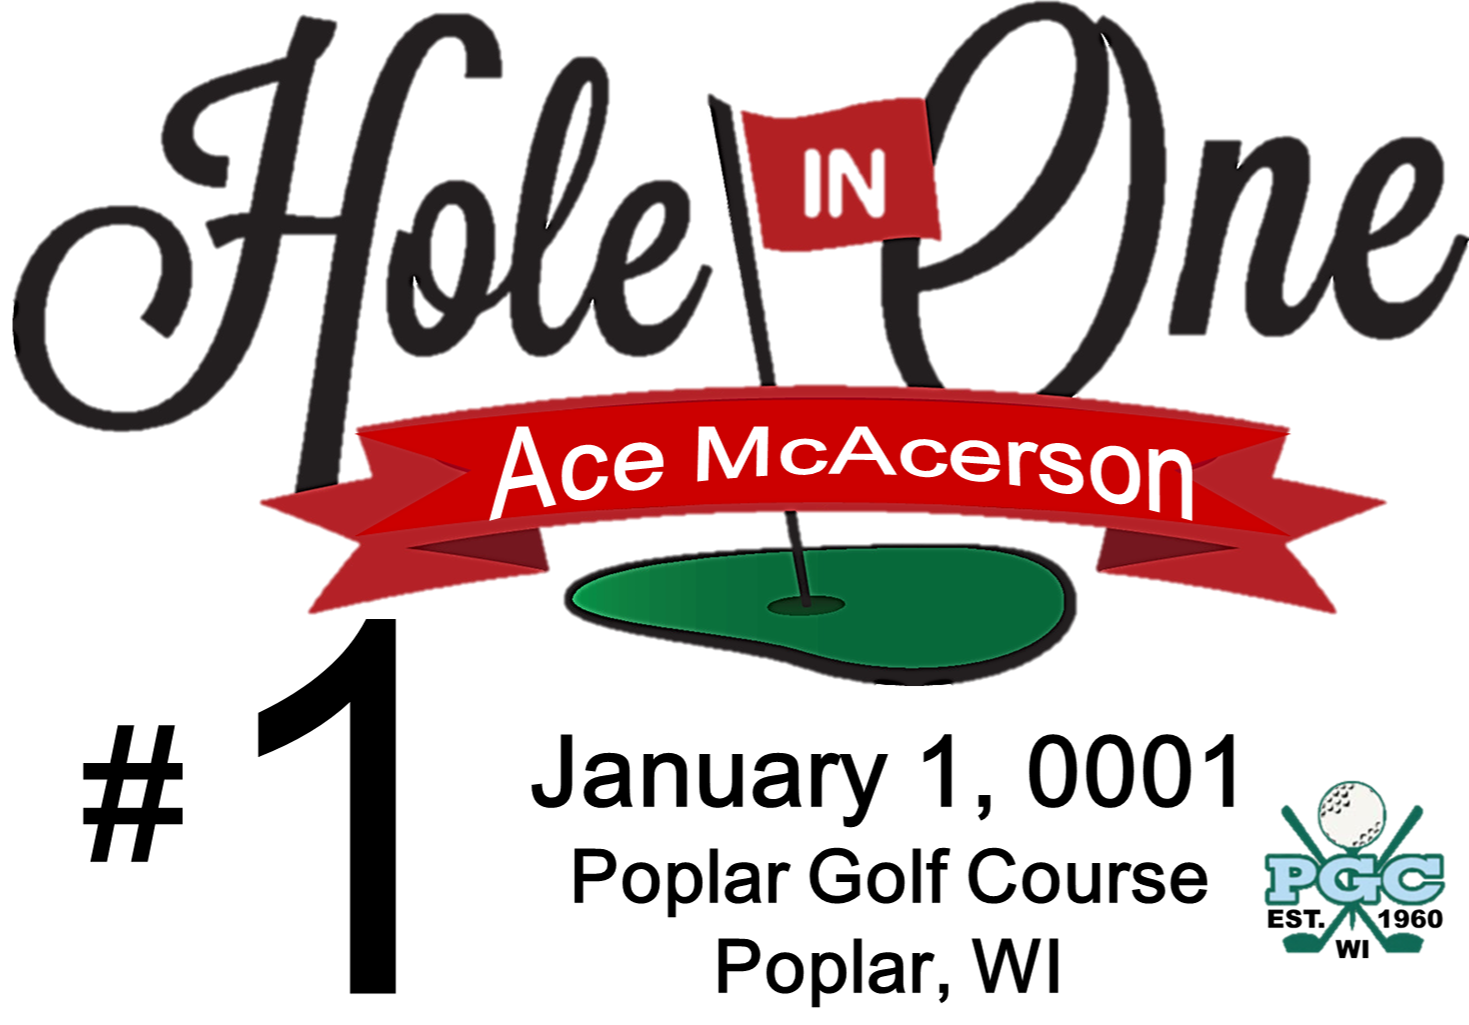 Club hio flag for. Golfing clipart hole in one